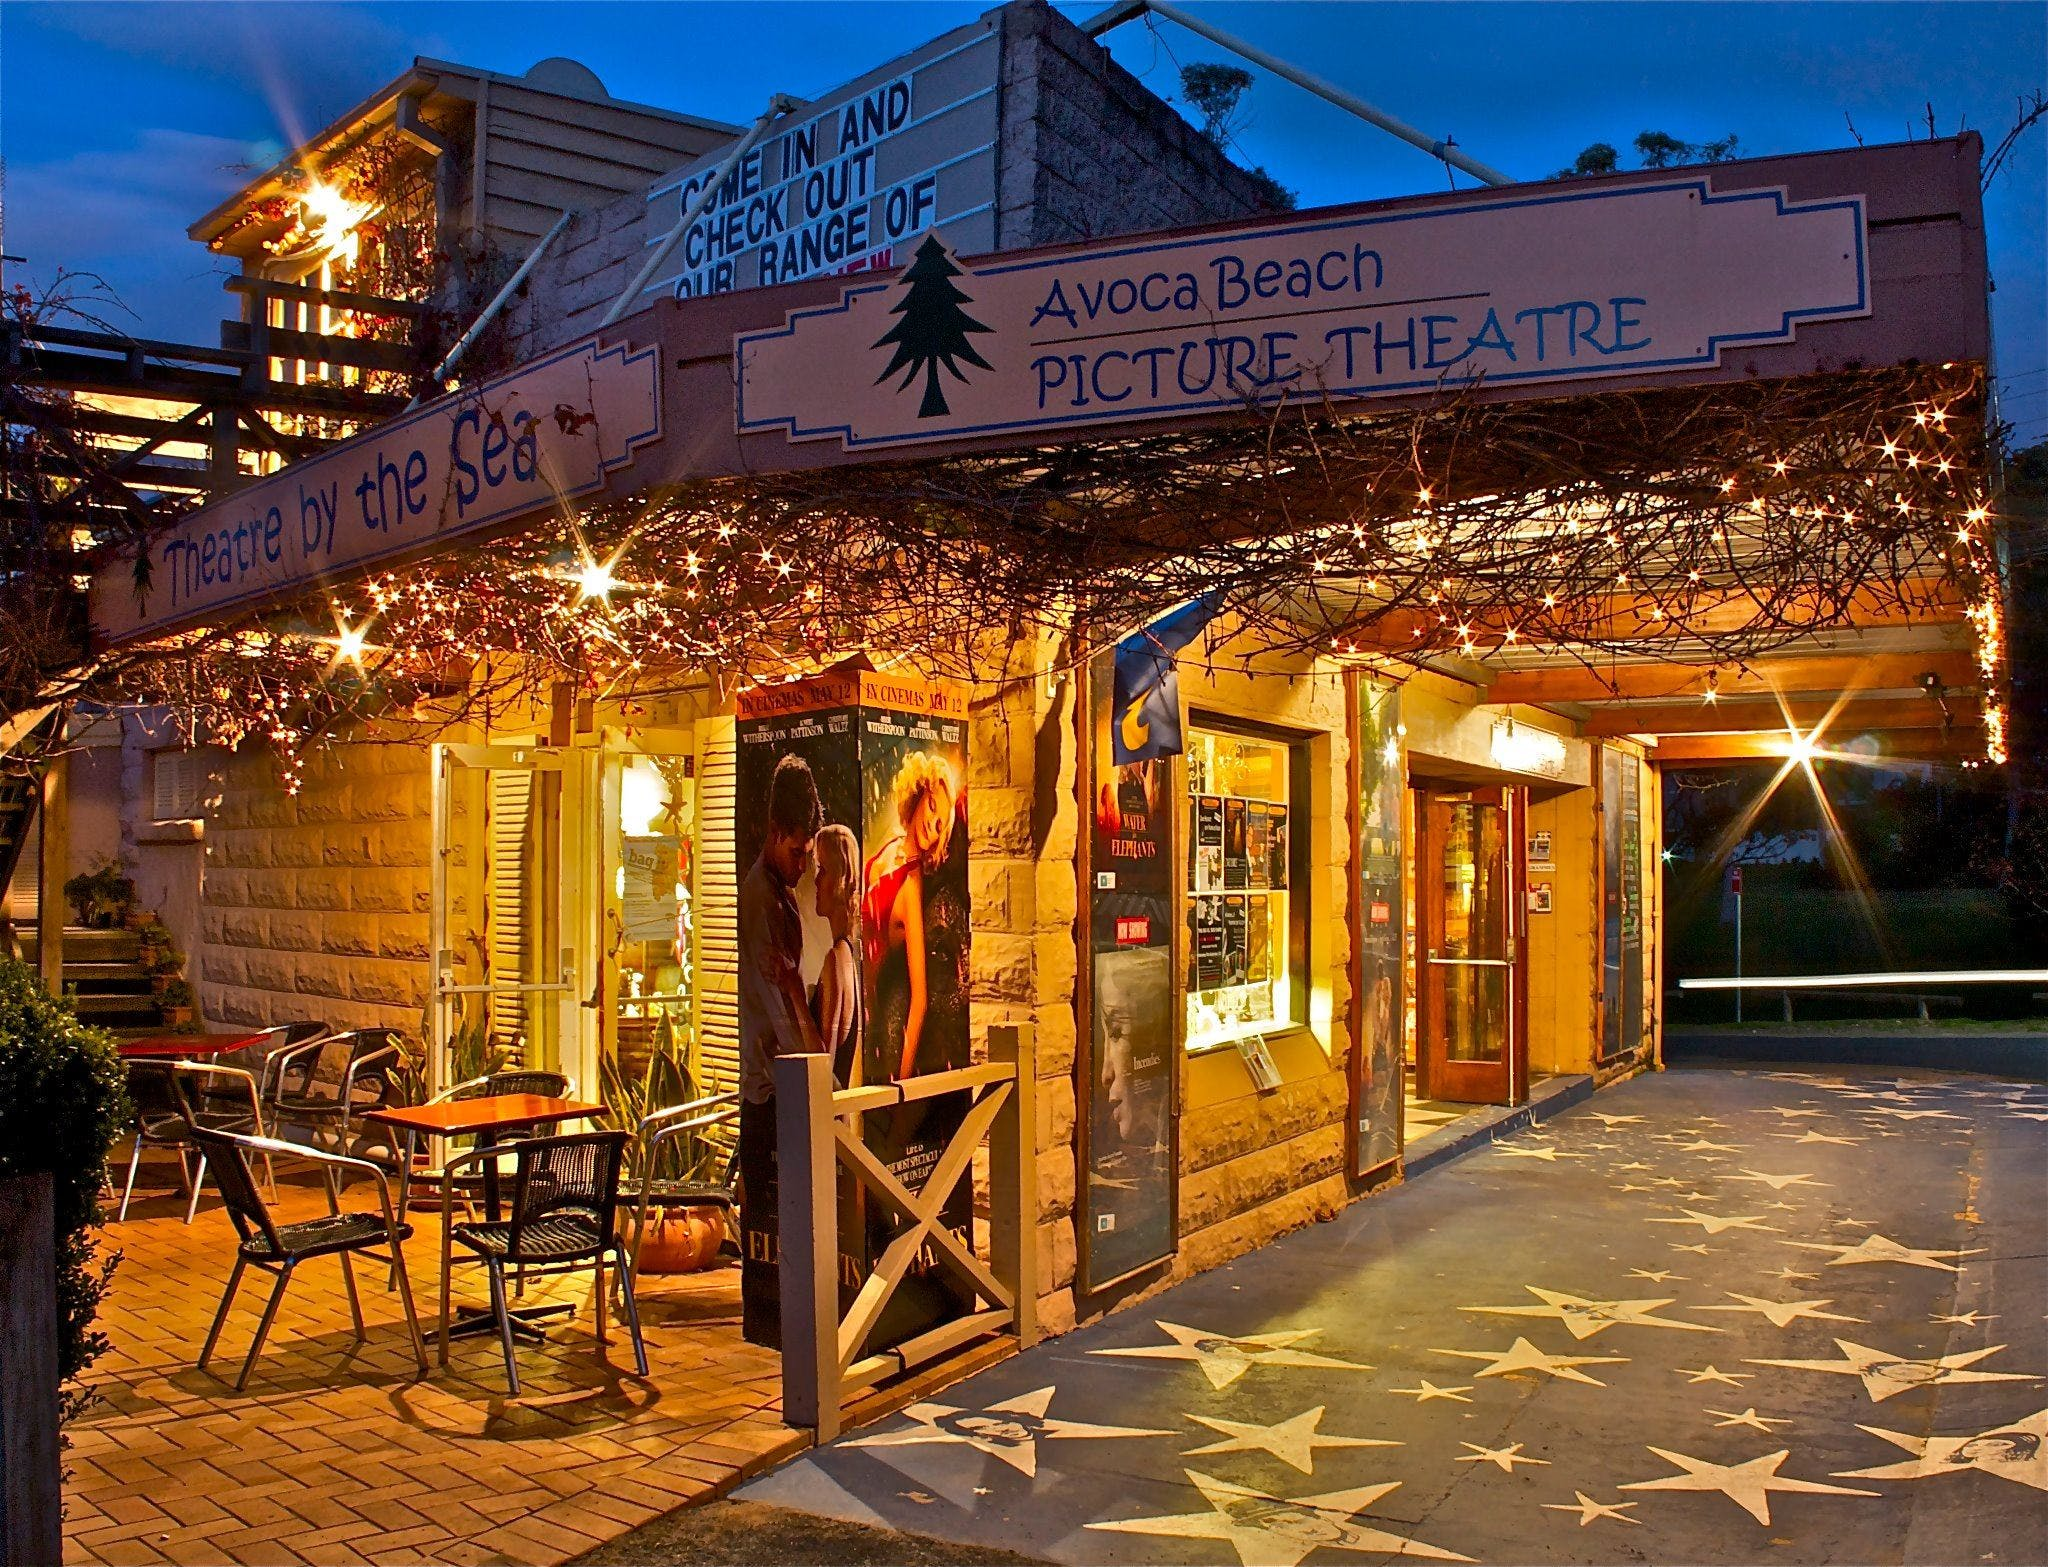 Avoca Beach Picture Theatre - Australia Accommodation